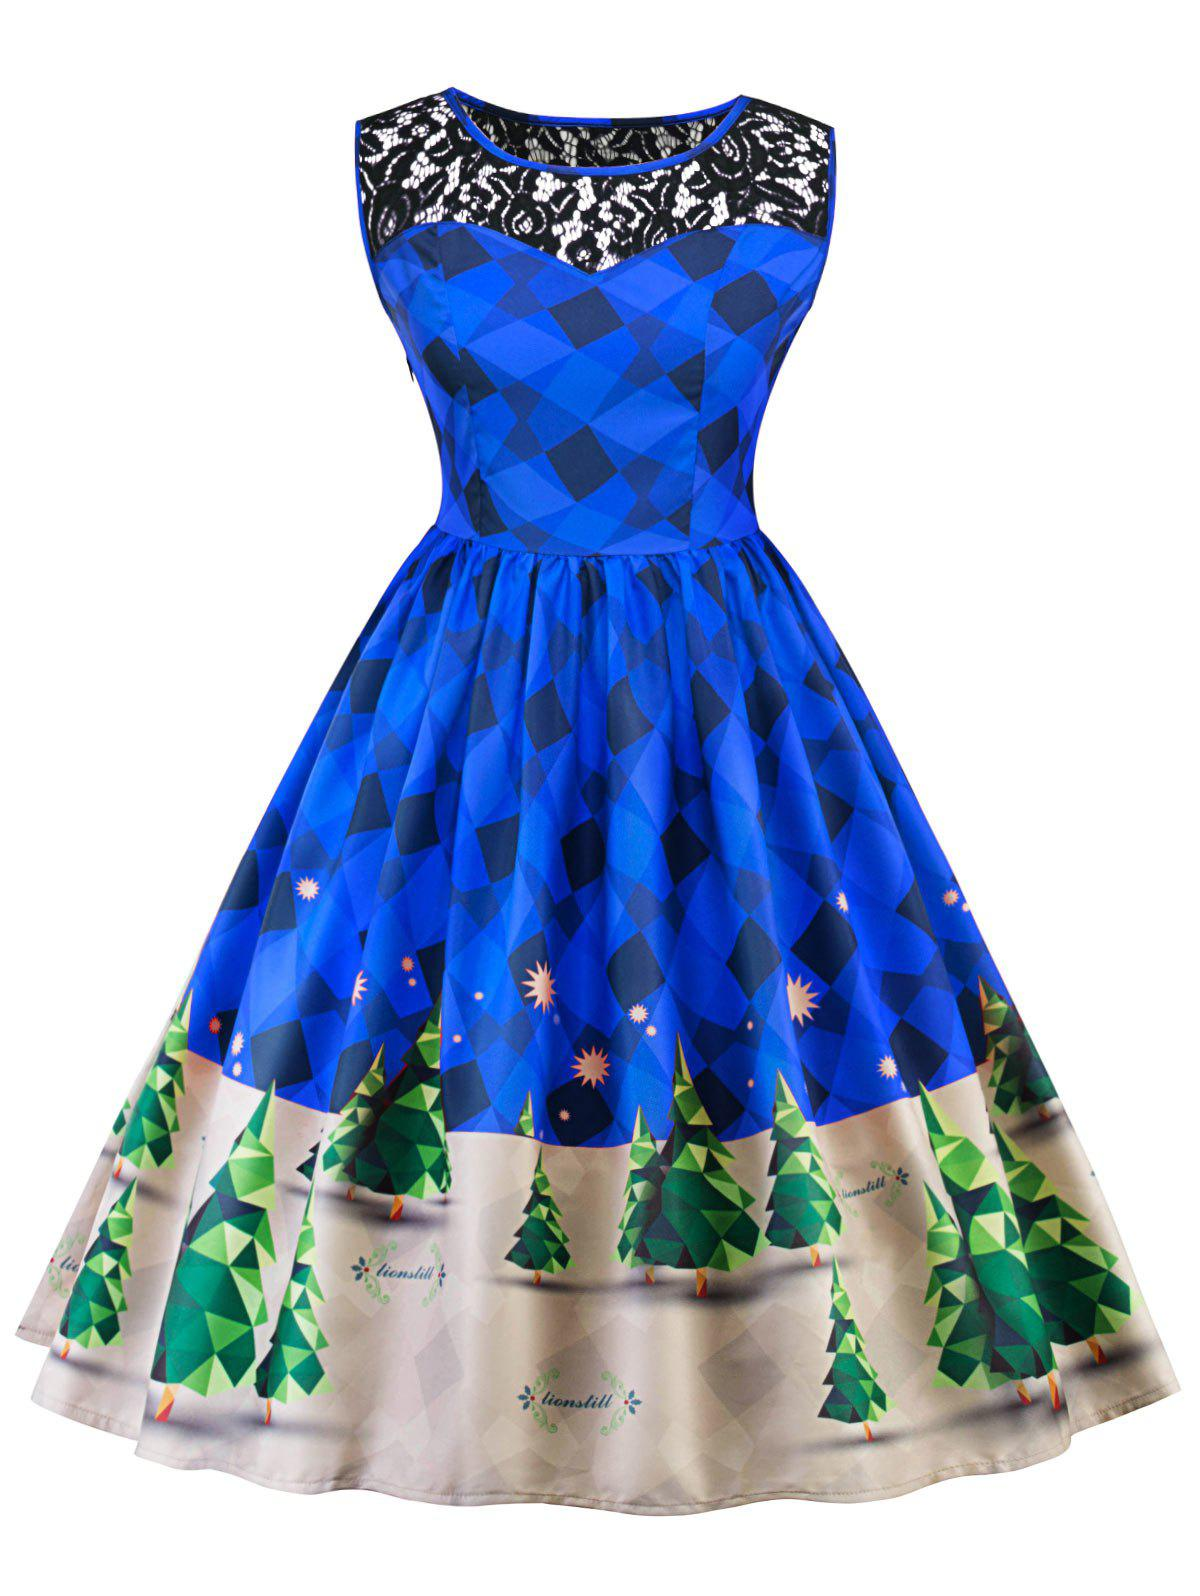 Vintage Christmas Lace Insert Pin Up Skater DressWOMEN<br><br>Size: XL; Color: BLUE; Style: Vintage; Material: Polyester; Silhouette: A-Line; Dresses Length: Knee-Length; Neckline: Round Collar; Sleeve Length: Sleeveless; Pattern Type: Patchwork,Print; With Belt: No; Season: Fall,Spring; Weight: 0.2800kg; Package Contents: 1 x Dress;